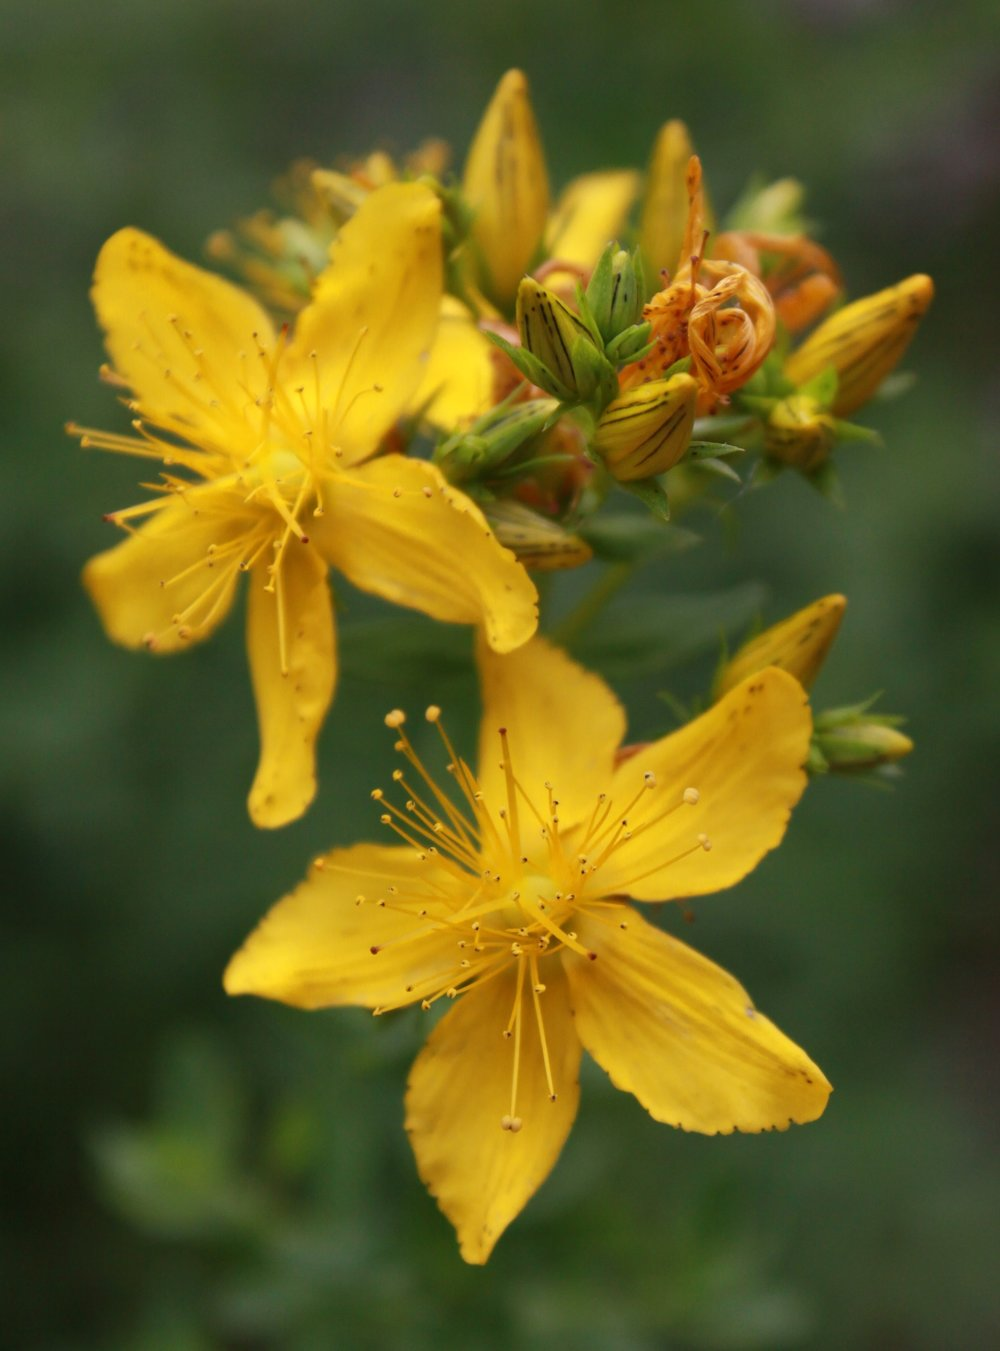 St. John's Wort 1 (c) Copyright All Rights Reserved Laura Zielinski 2016.jpg